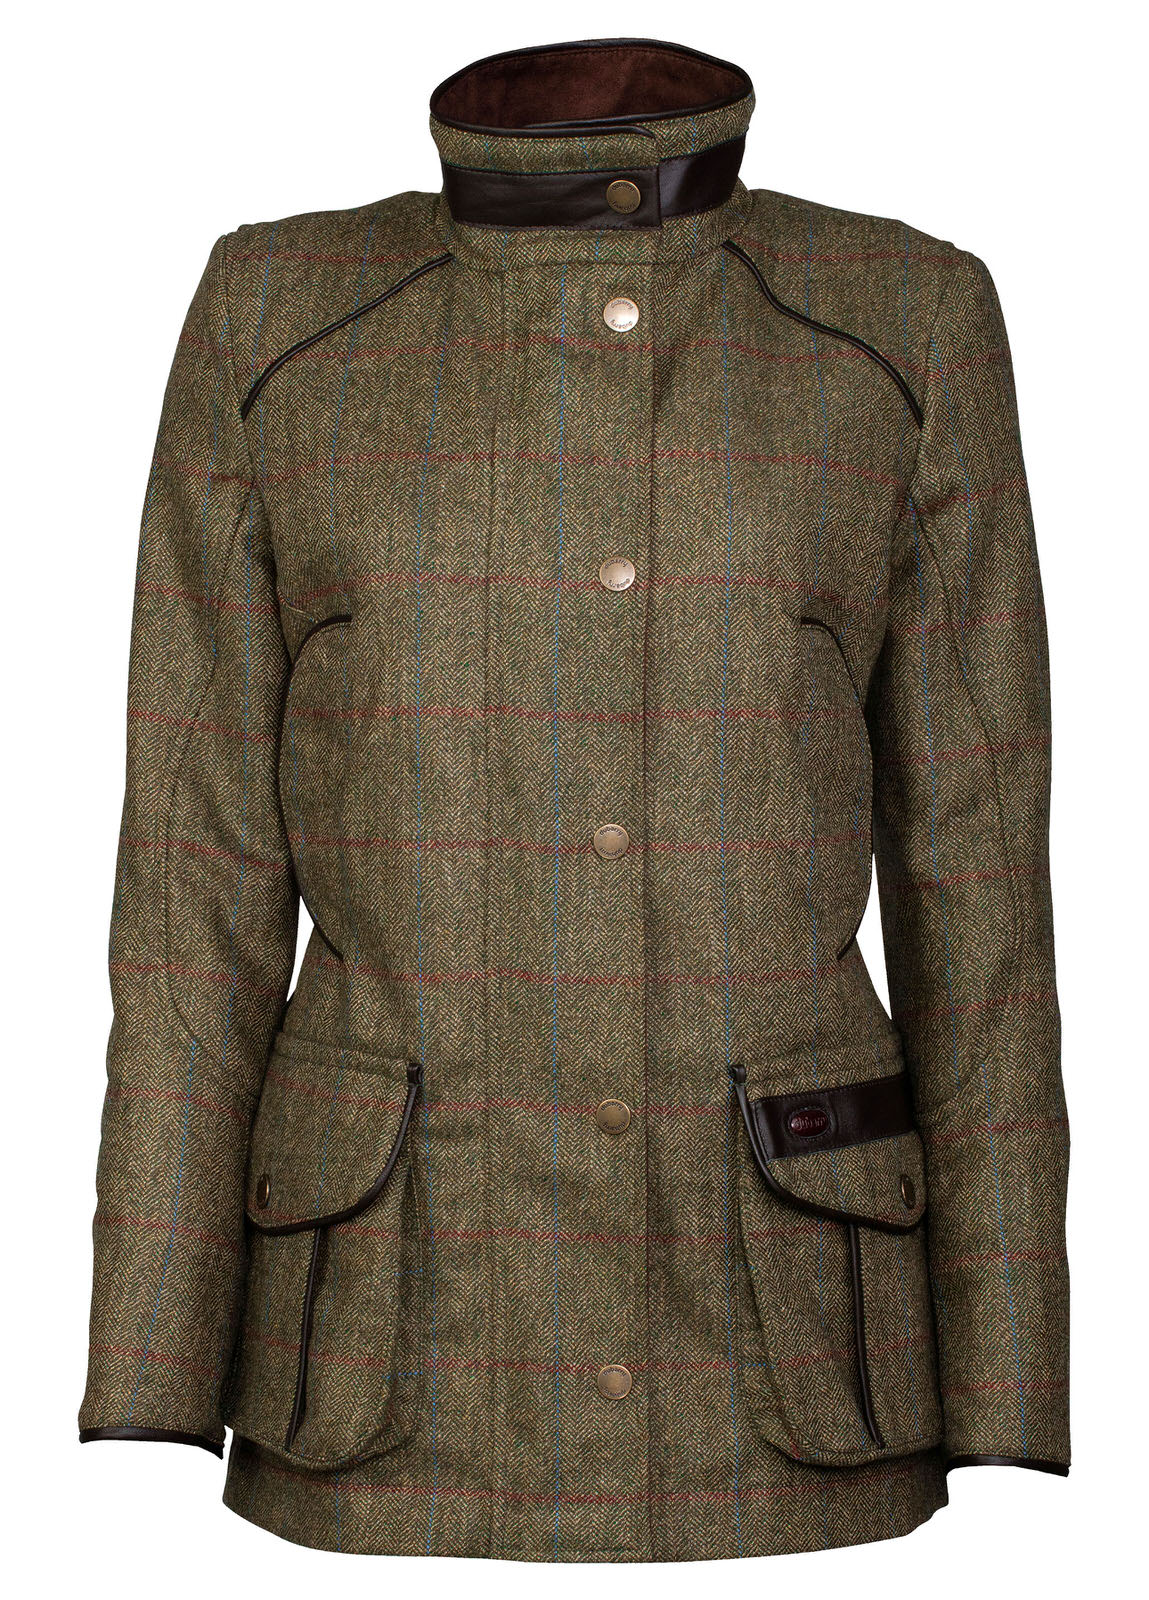 Marlfield_Tweed_Jacket_Moss_Image_1